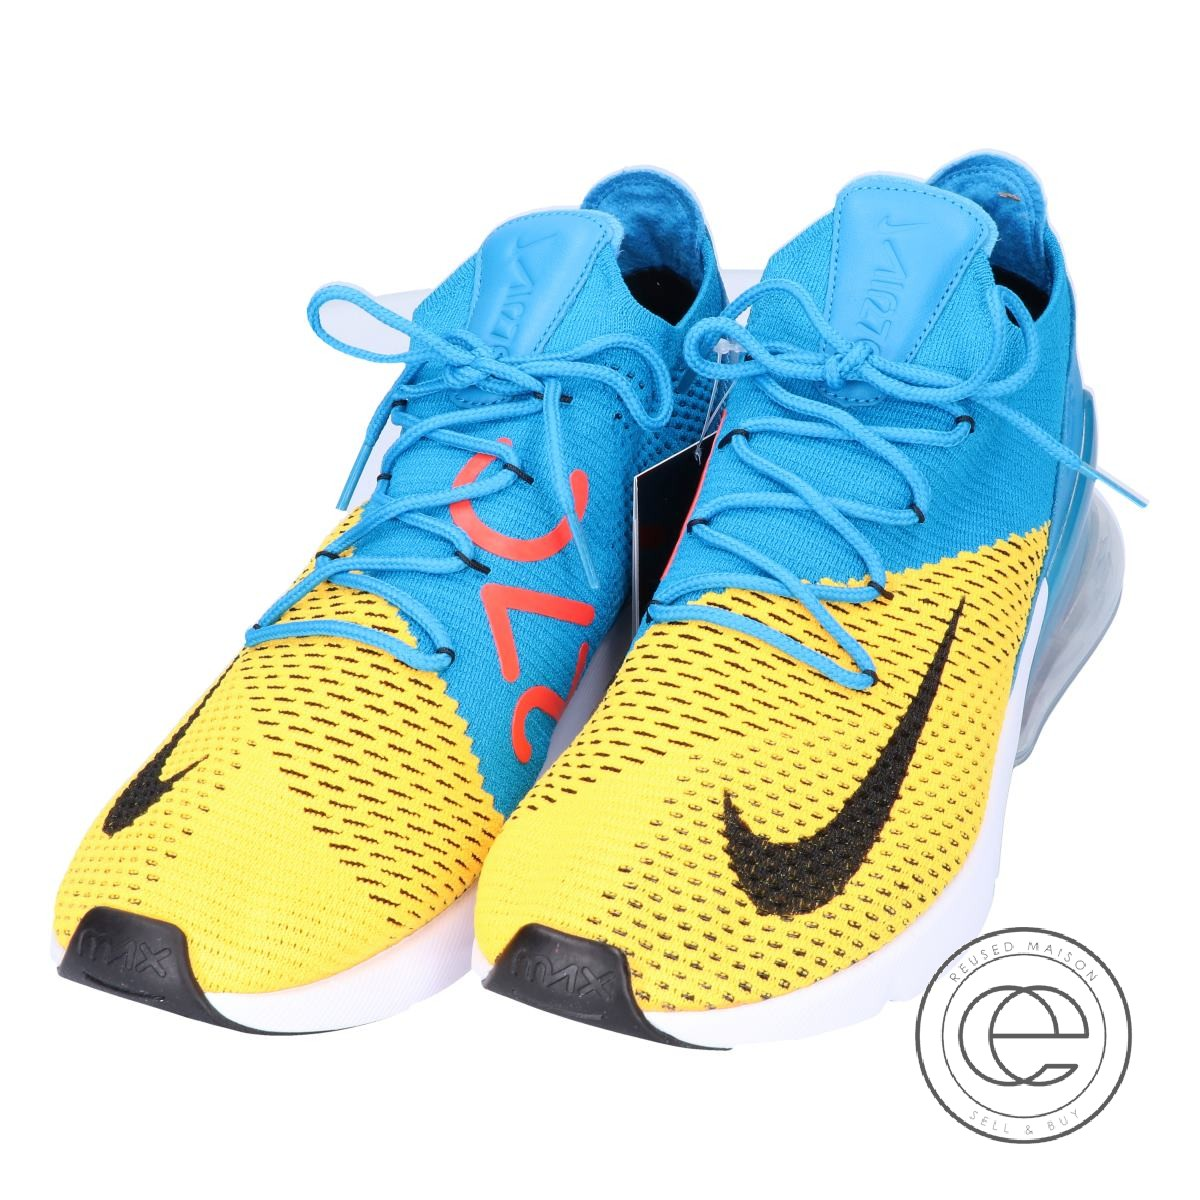 Nike Air Max 270 Flyknit Sport Shoes for Men Dark Blue